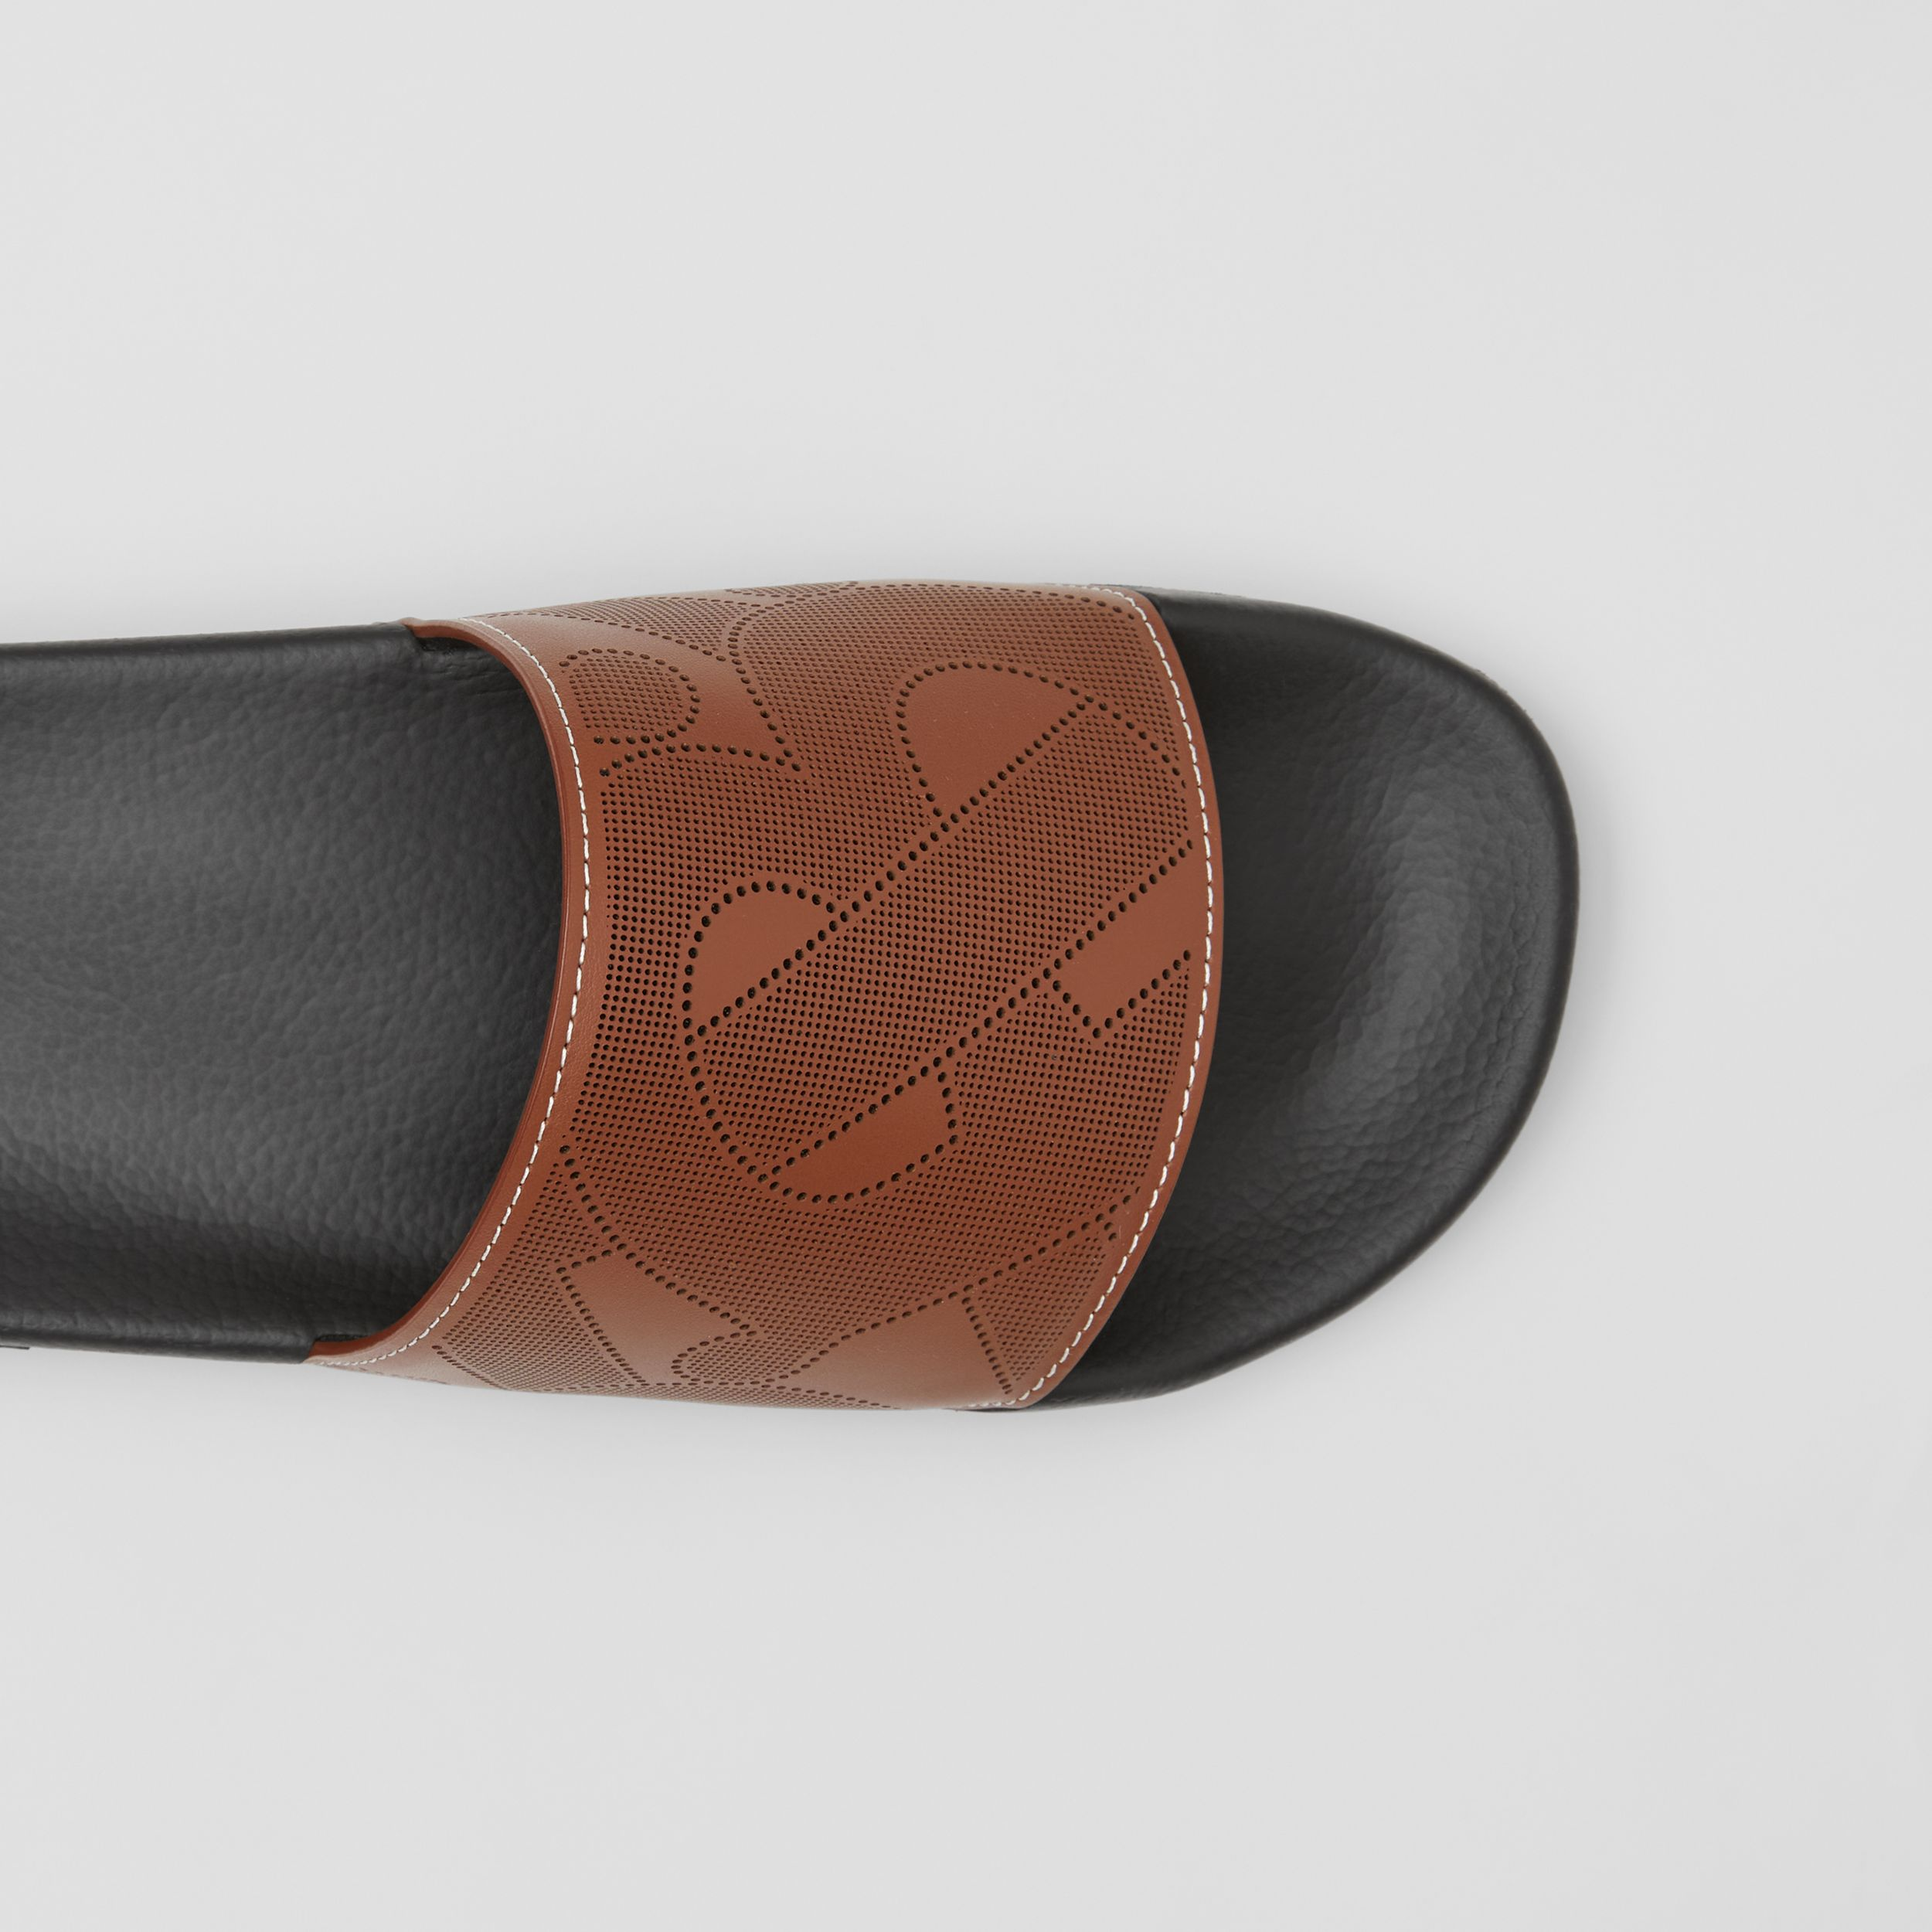 Perforated Monogram Leather Slides in Tan - Men | Burberry - 2